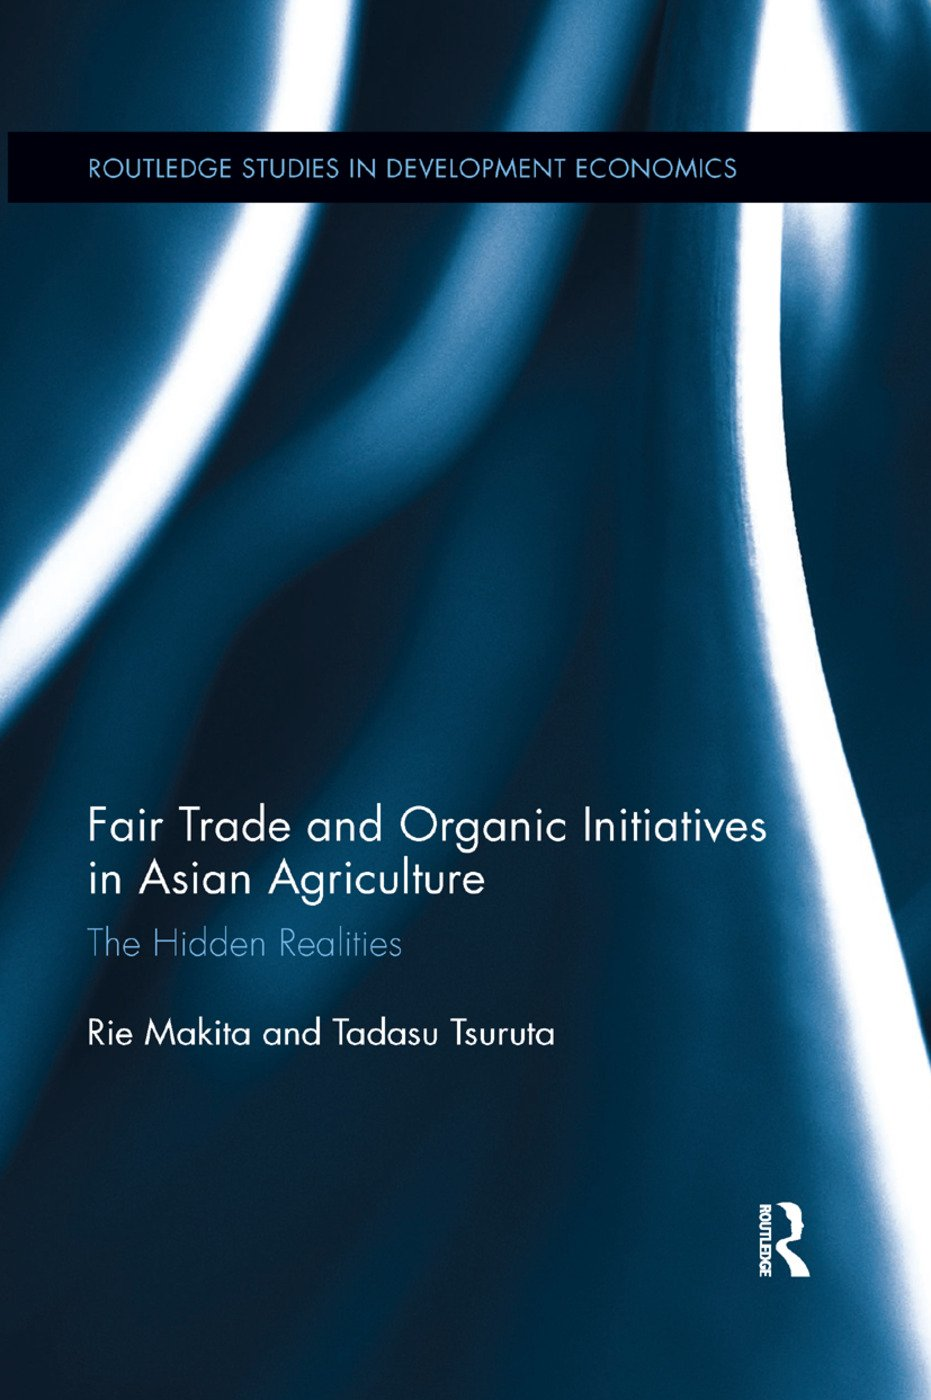 Fair Trade and Organic Initiatives in Asian Agriculture